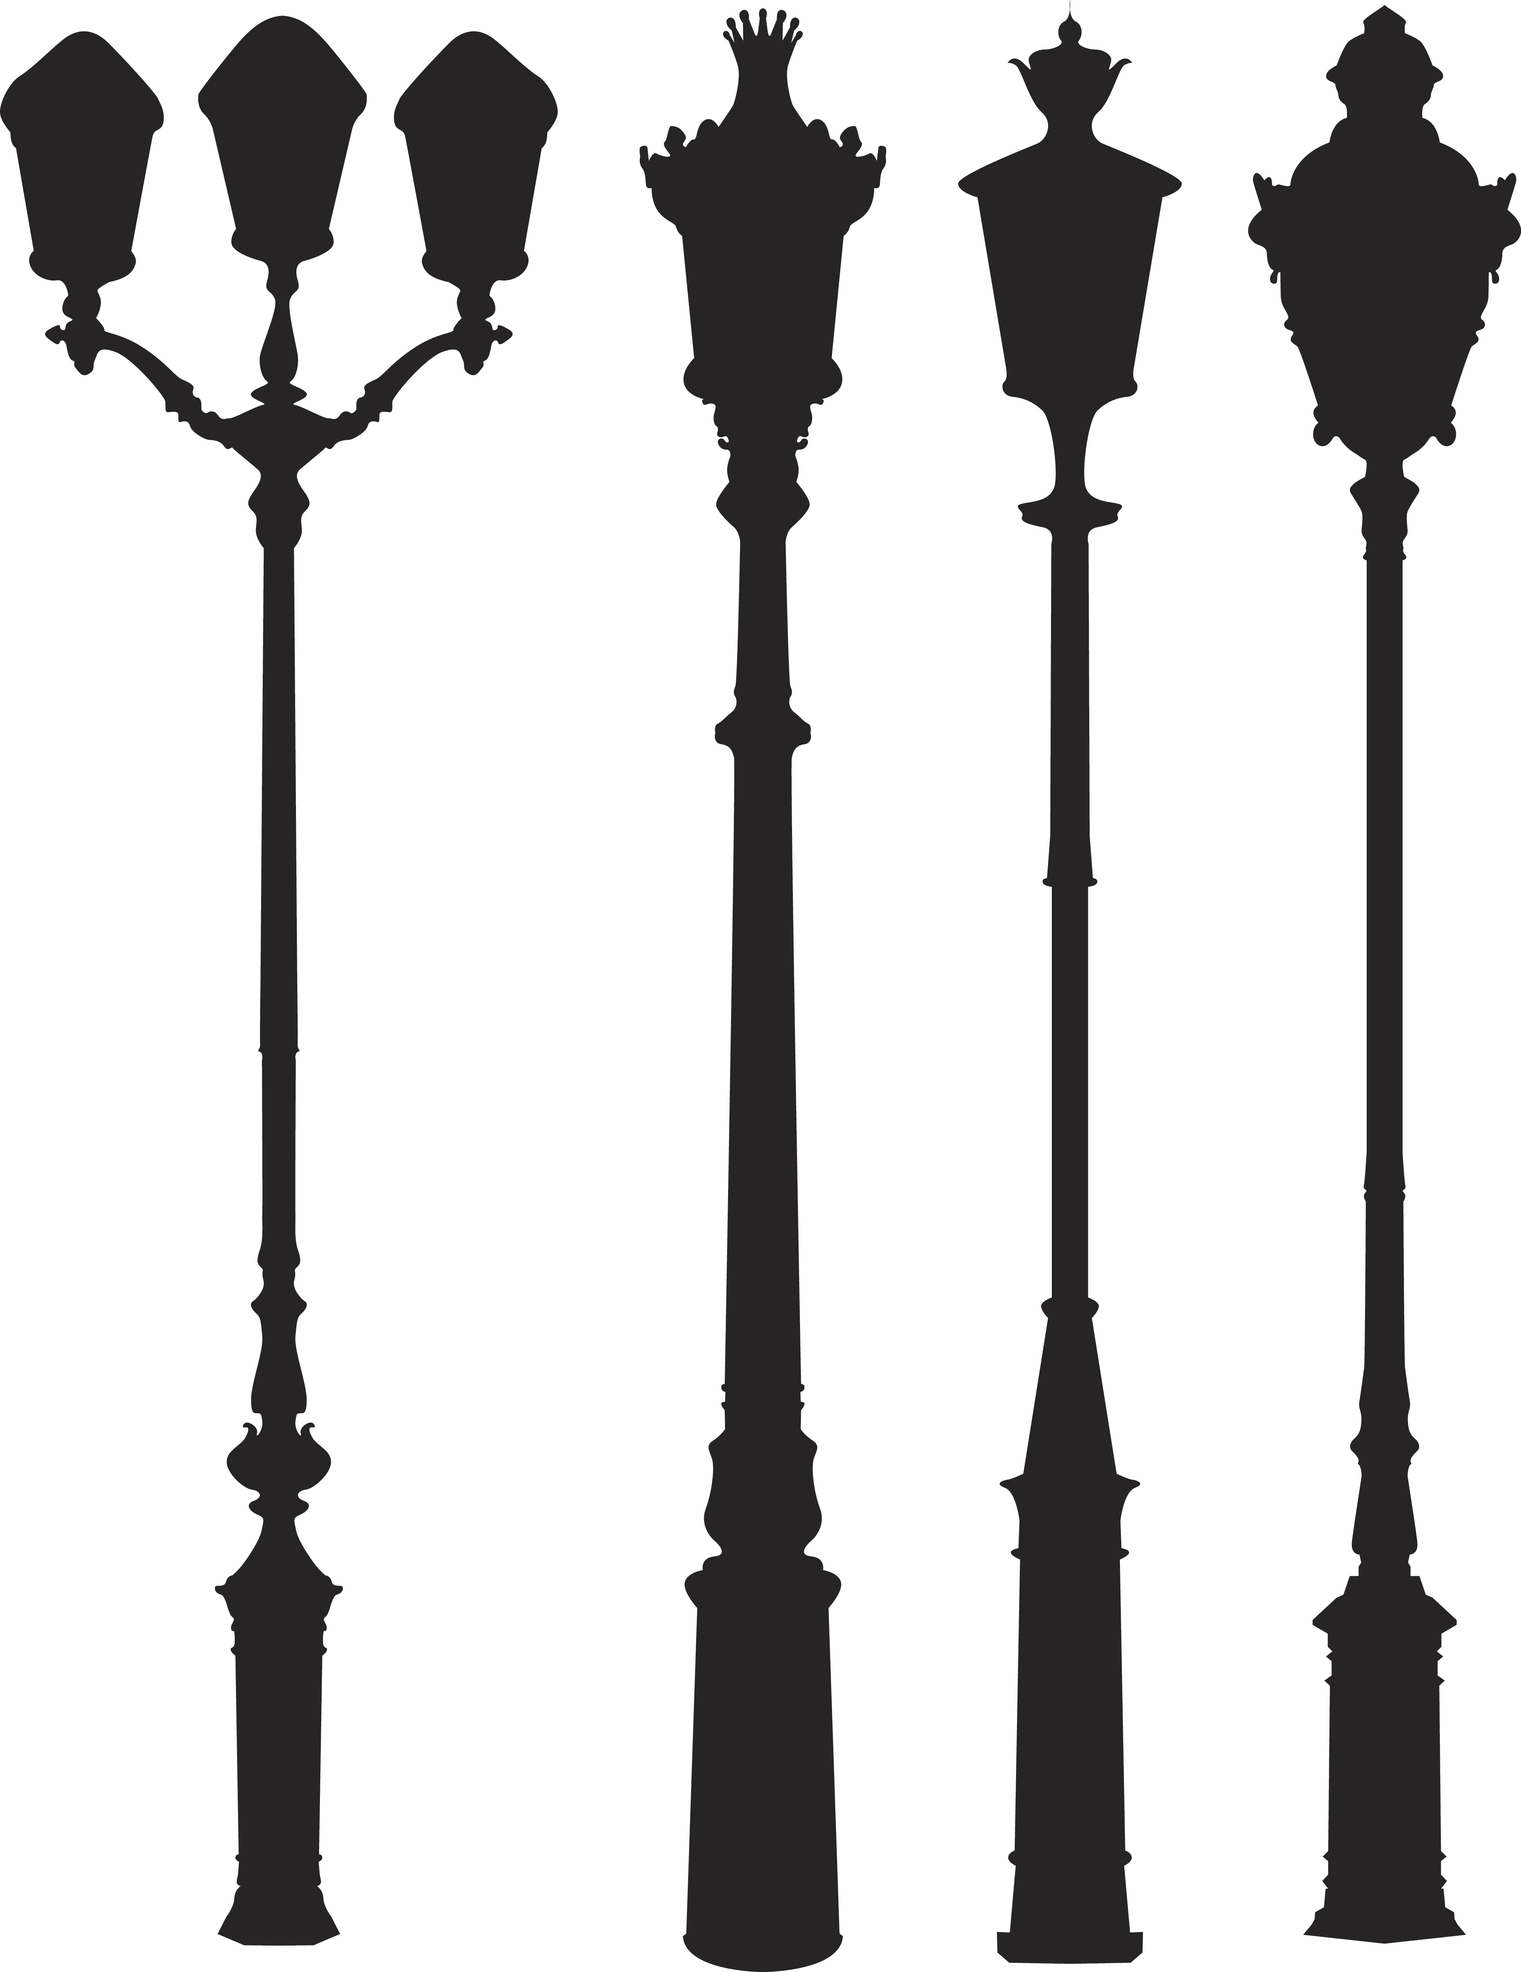 Different lampposts